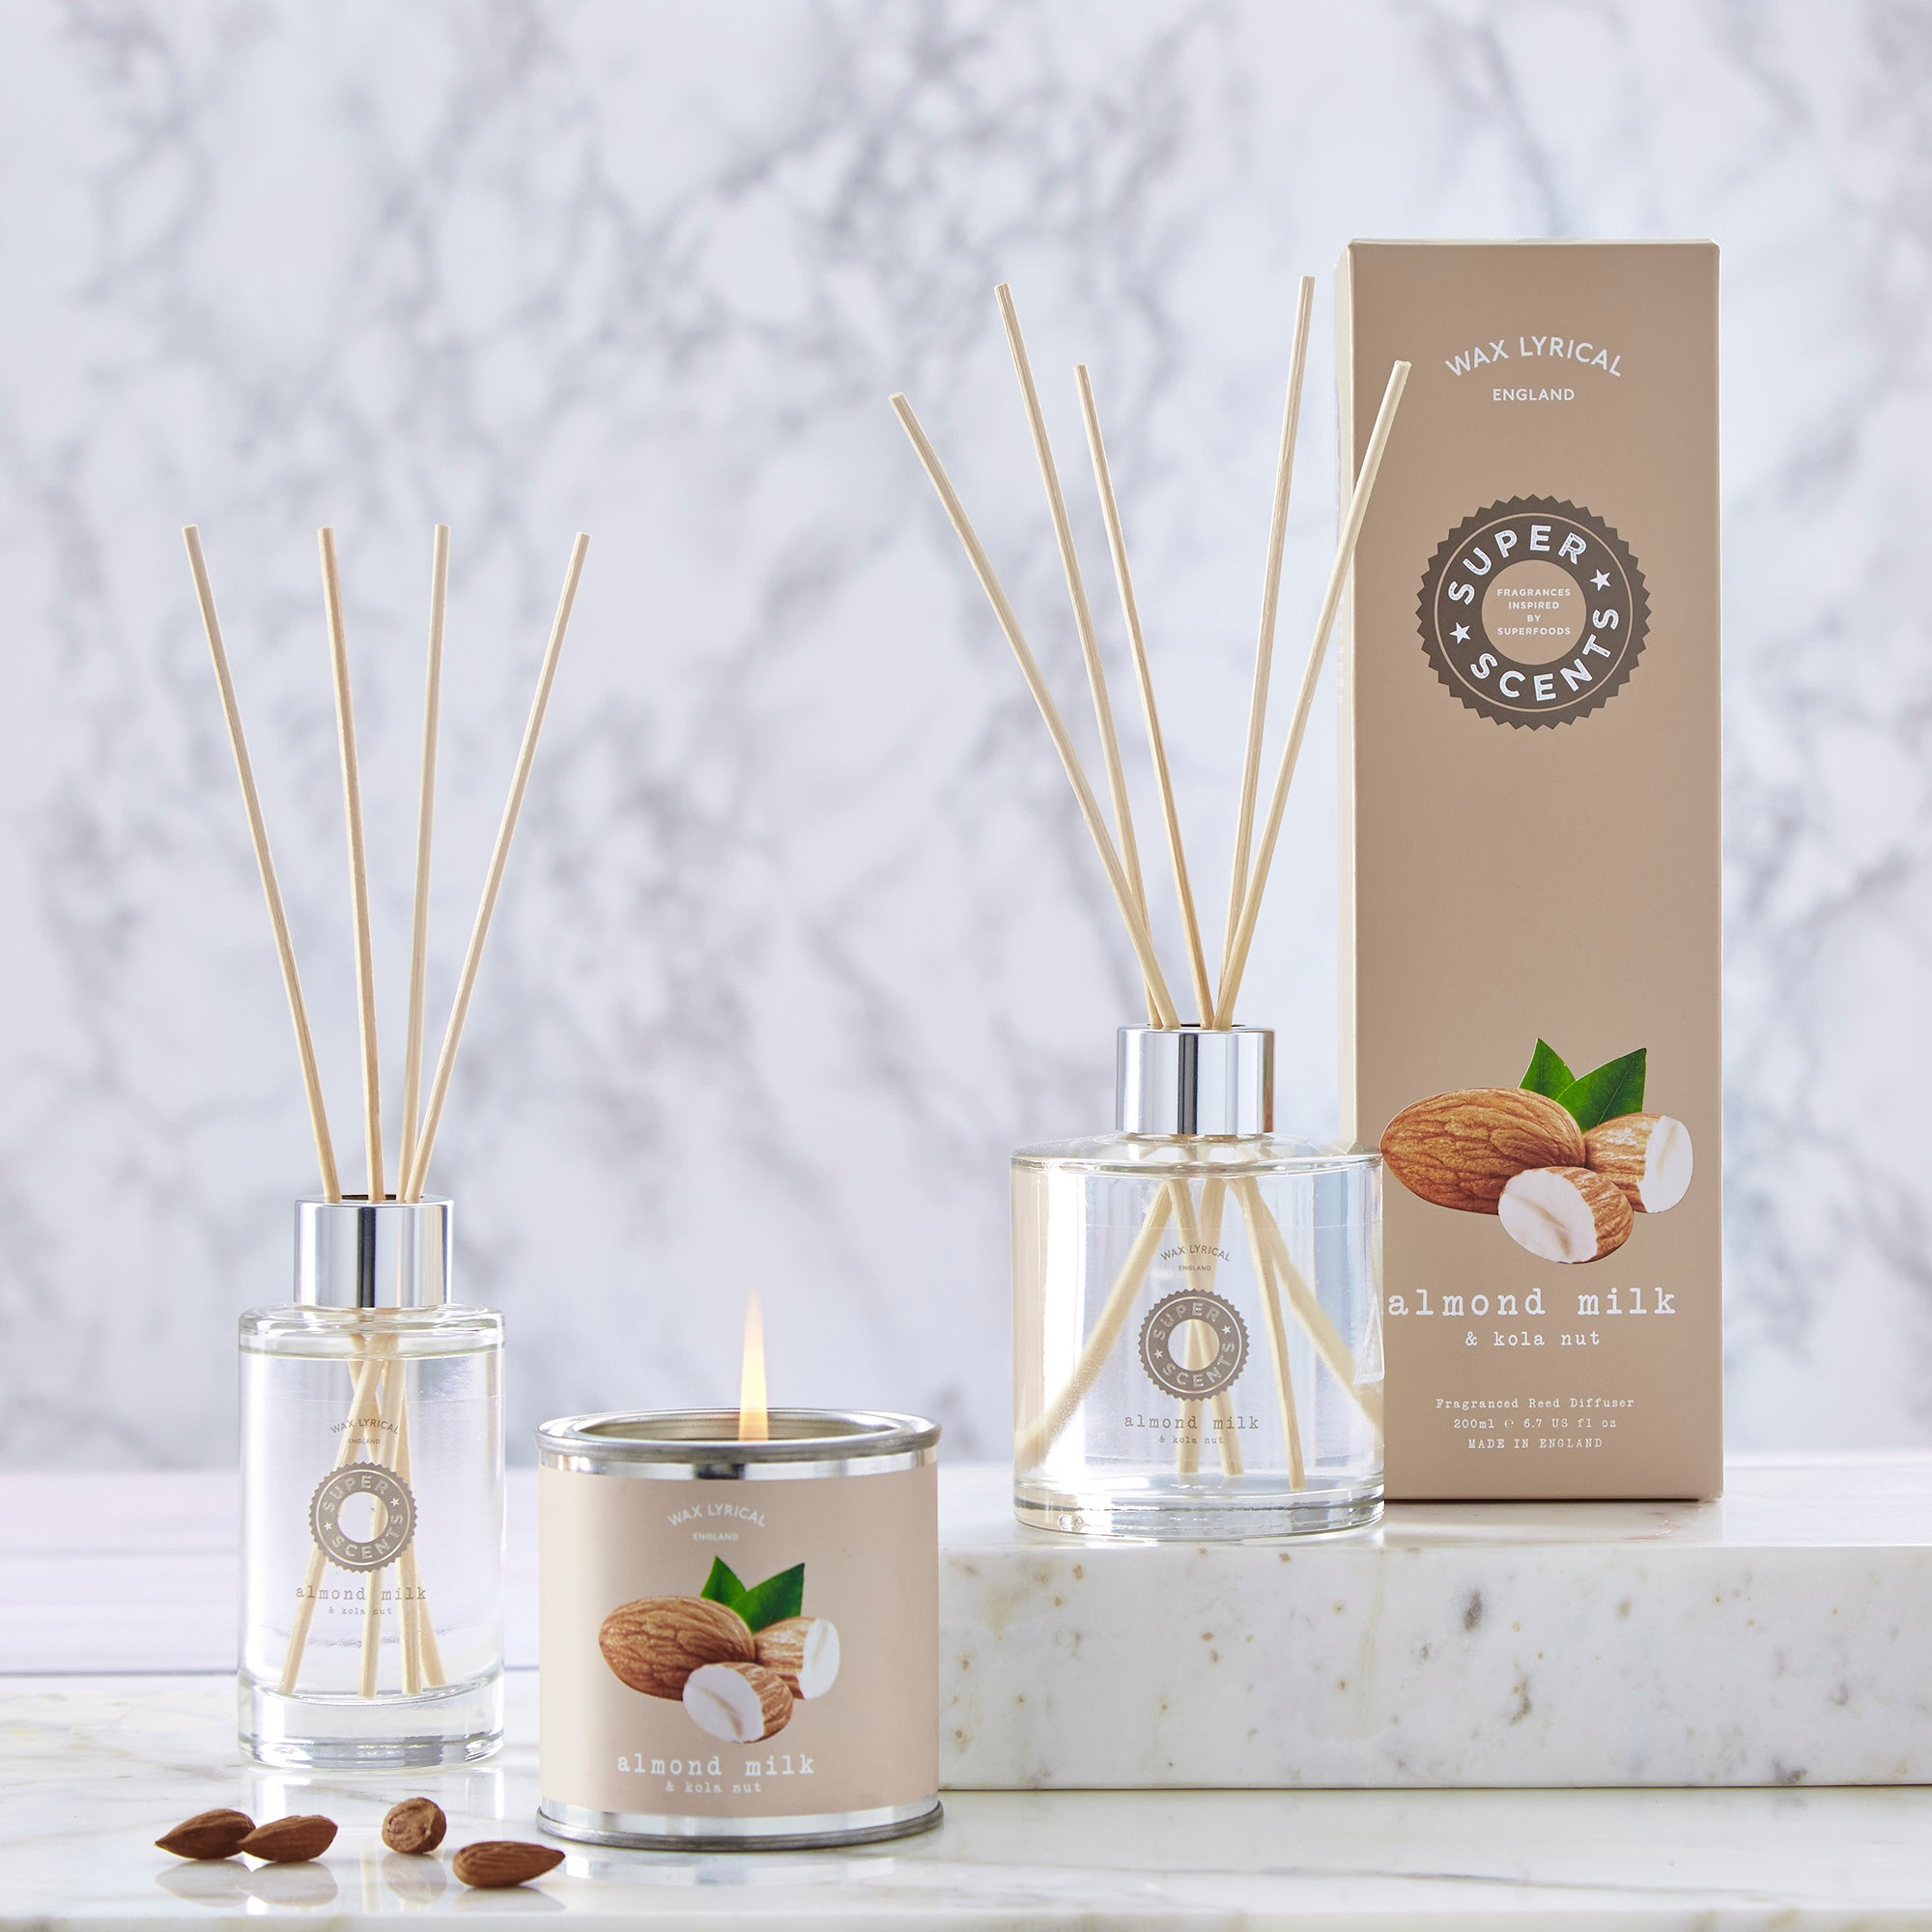 Wax Lyrical Superscents Almond Milk and Kola Nut Fragrance Collection